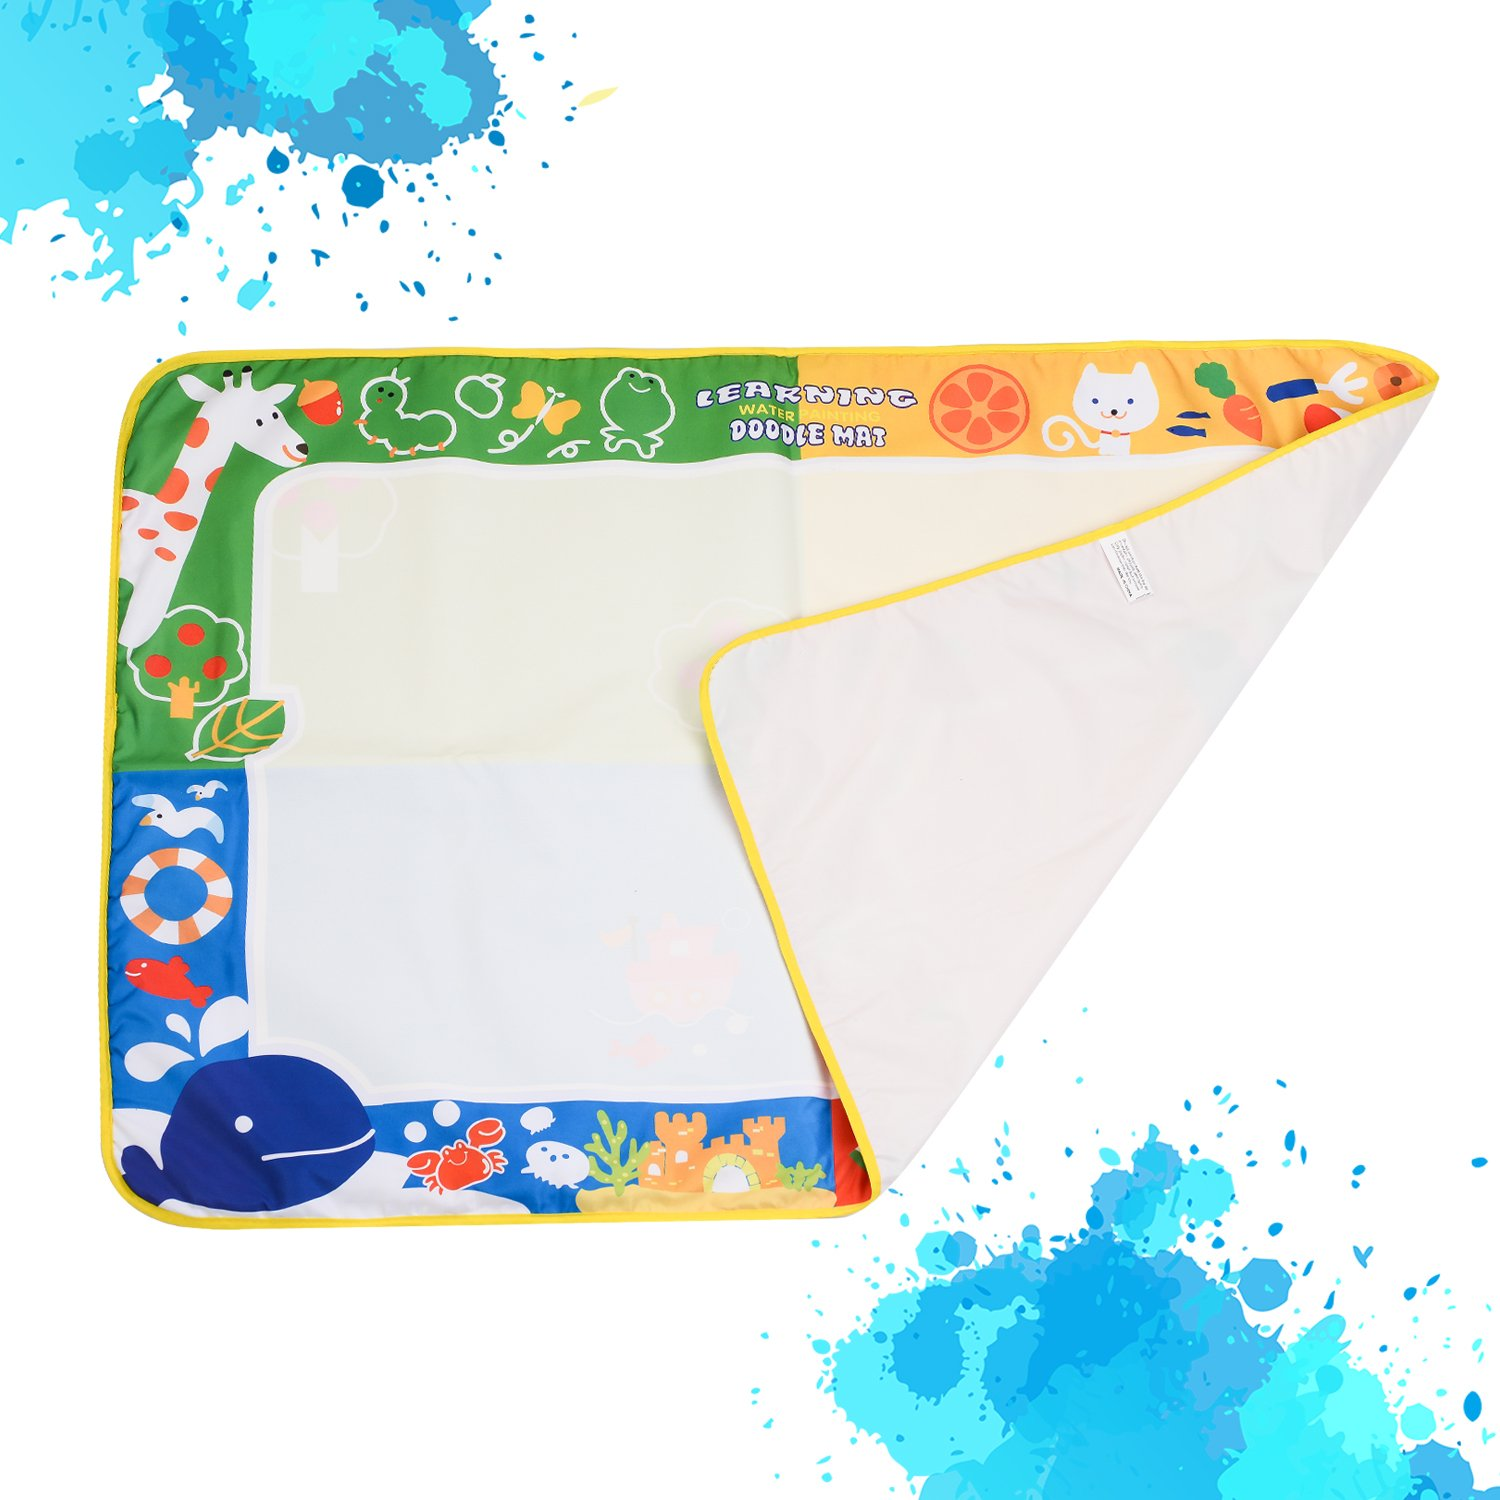 citymama Drawing Mat Doodle Magic mat water Drawing & writing Mat painting board 4 Colors with 3 Magic Drawing Pens and 15 Molds Kids Educational Toy Mat Gift for Children XL Size 40'' x 28'' by citymama (Image #7)